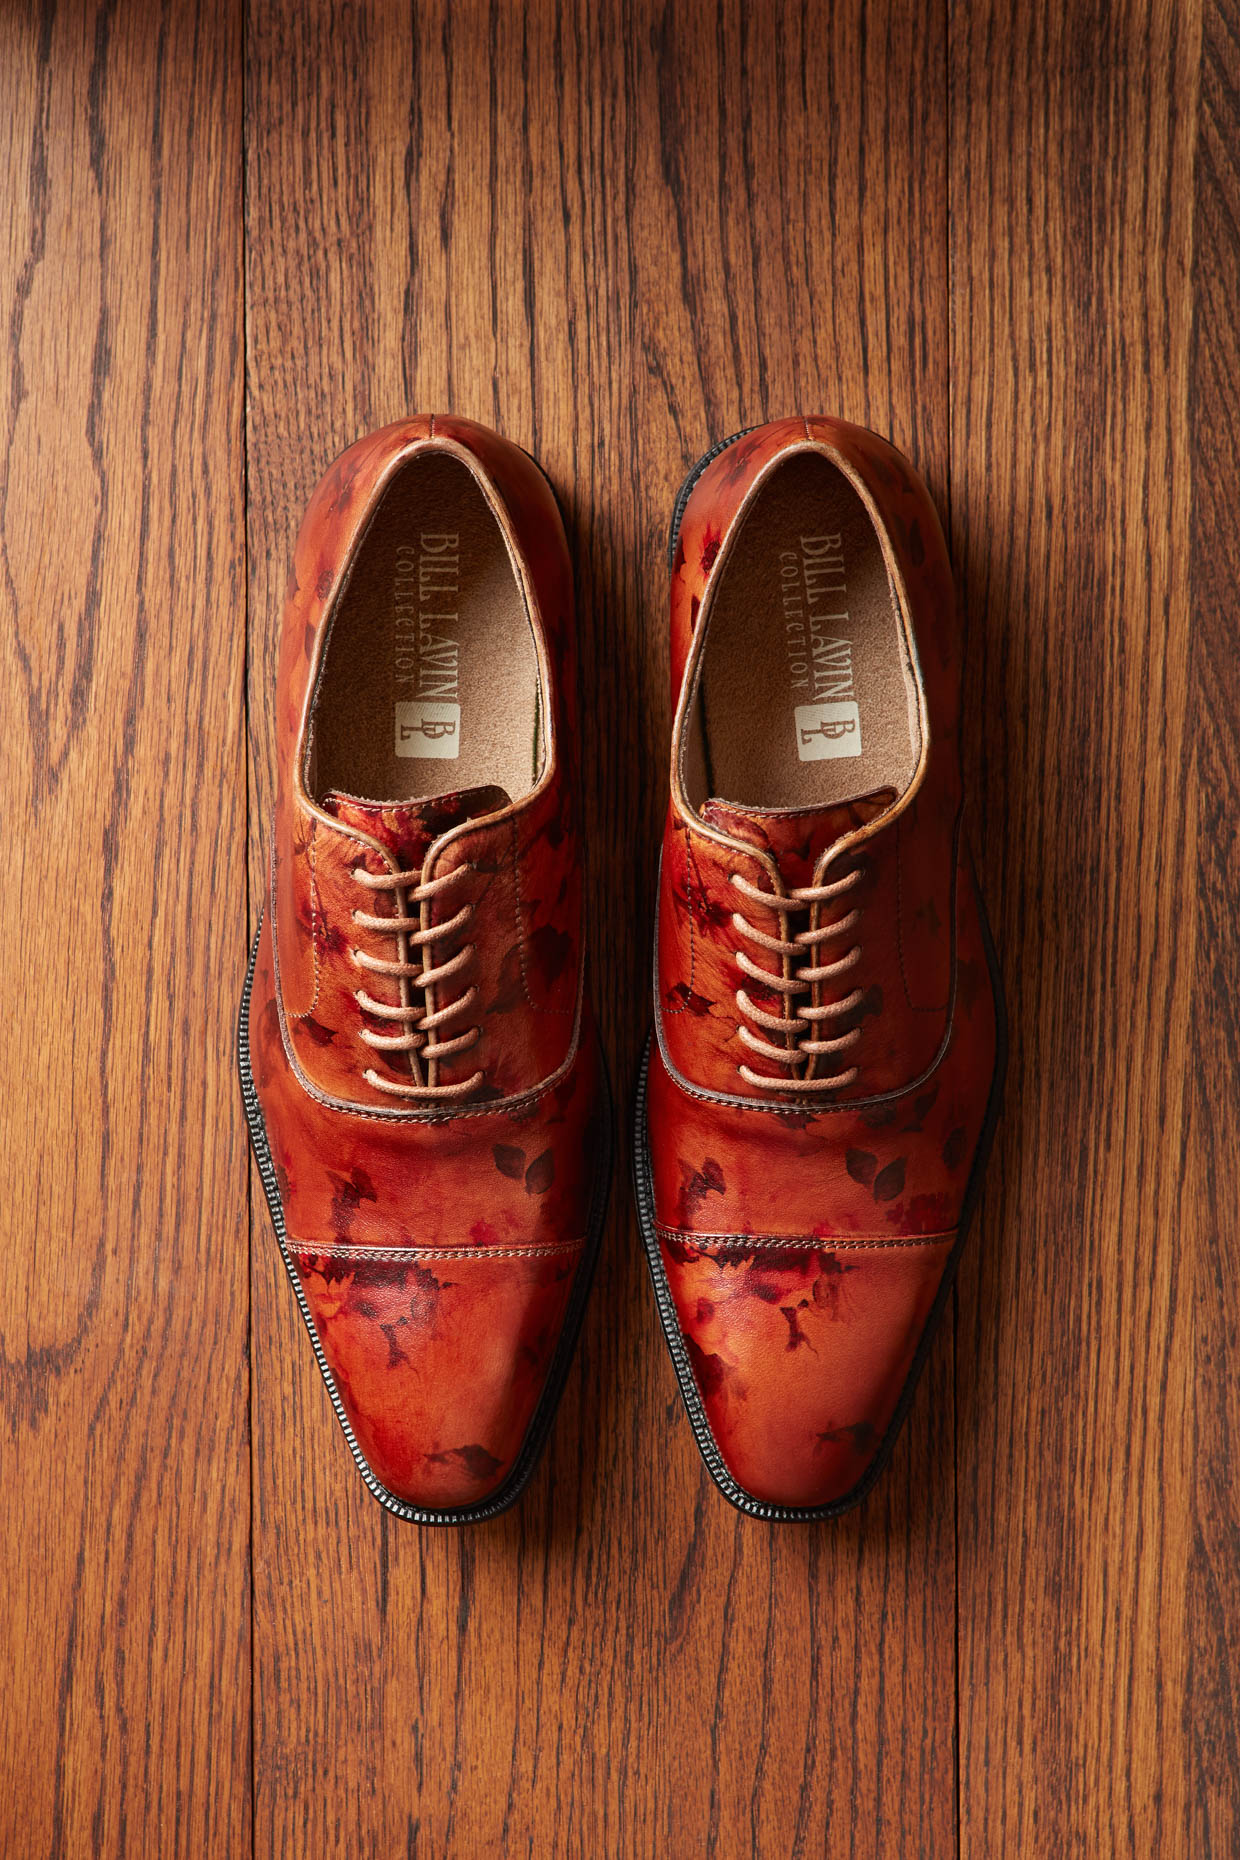 Arlen Flynn Shoes